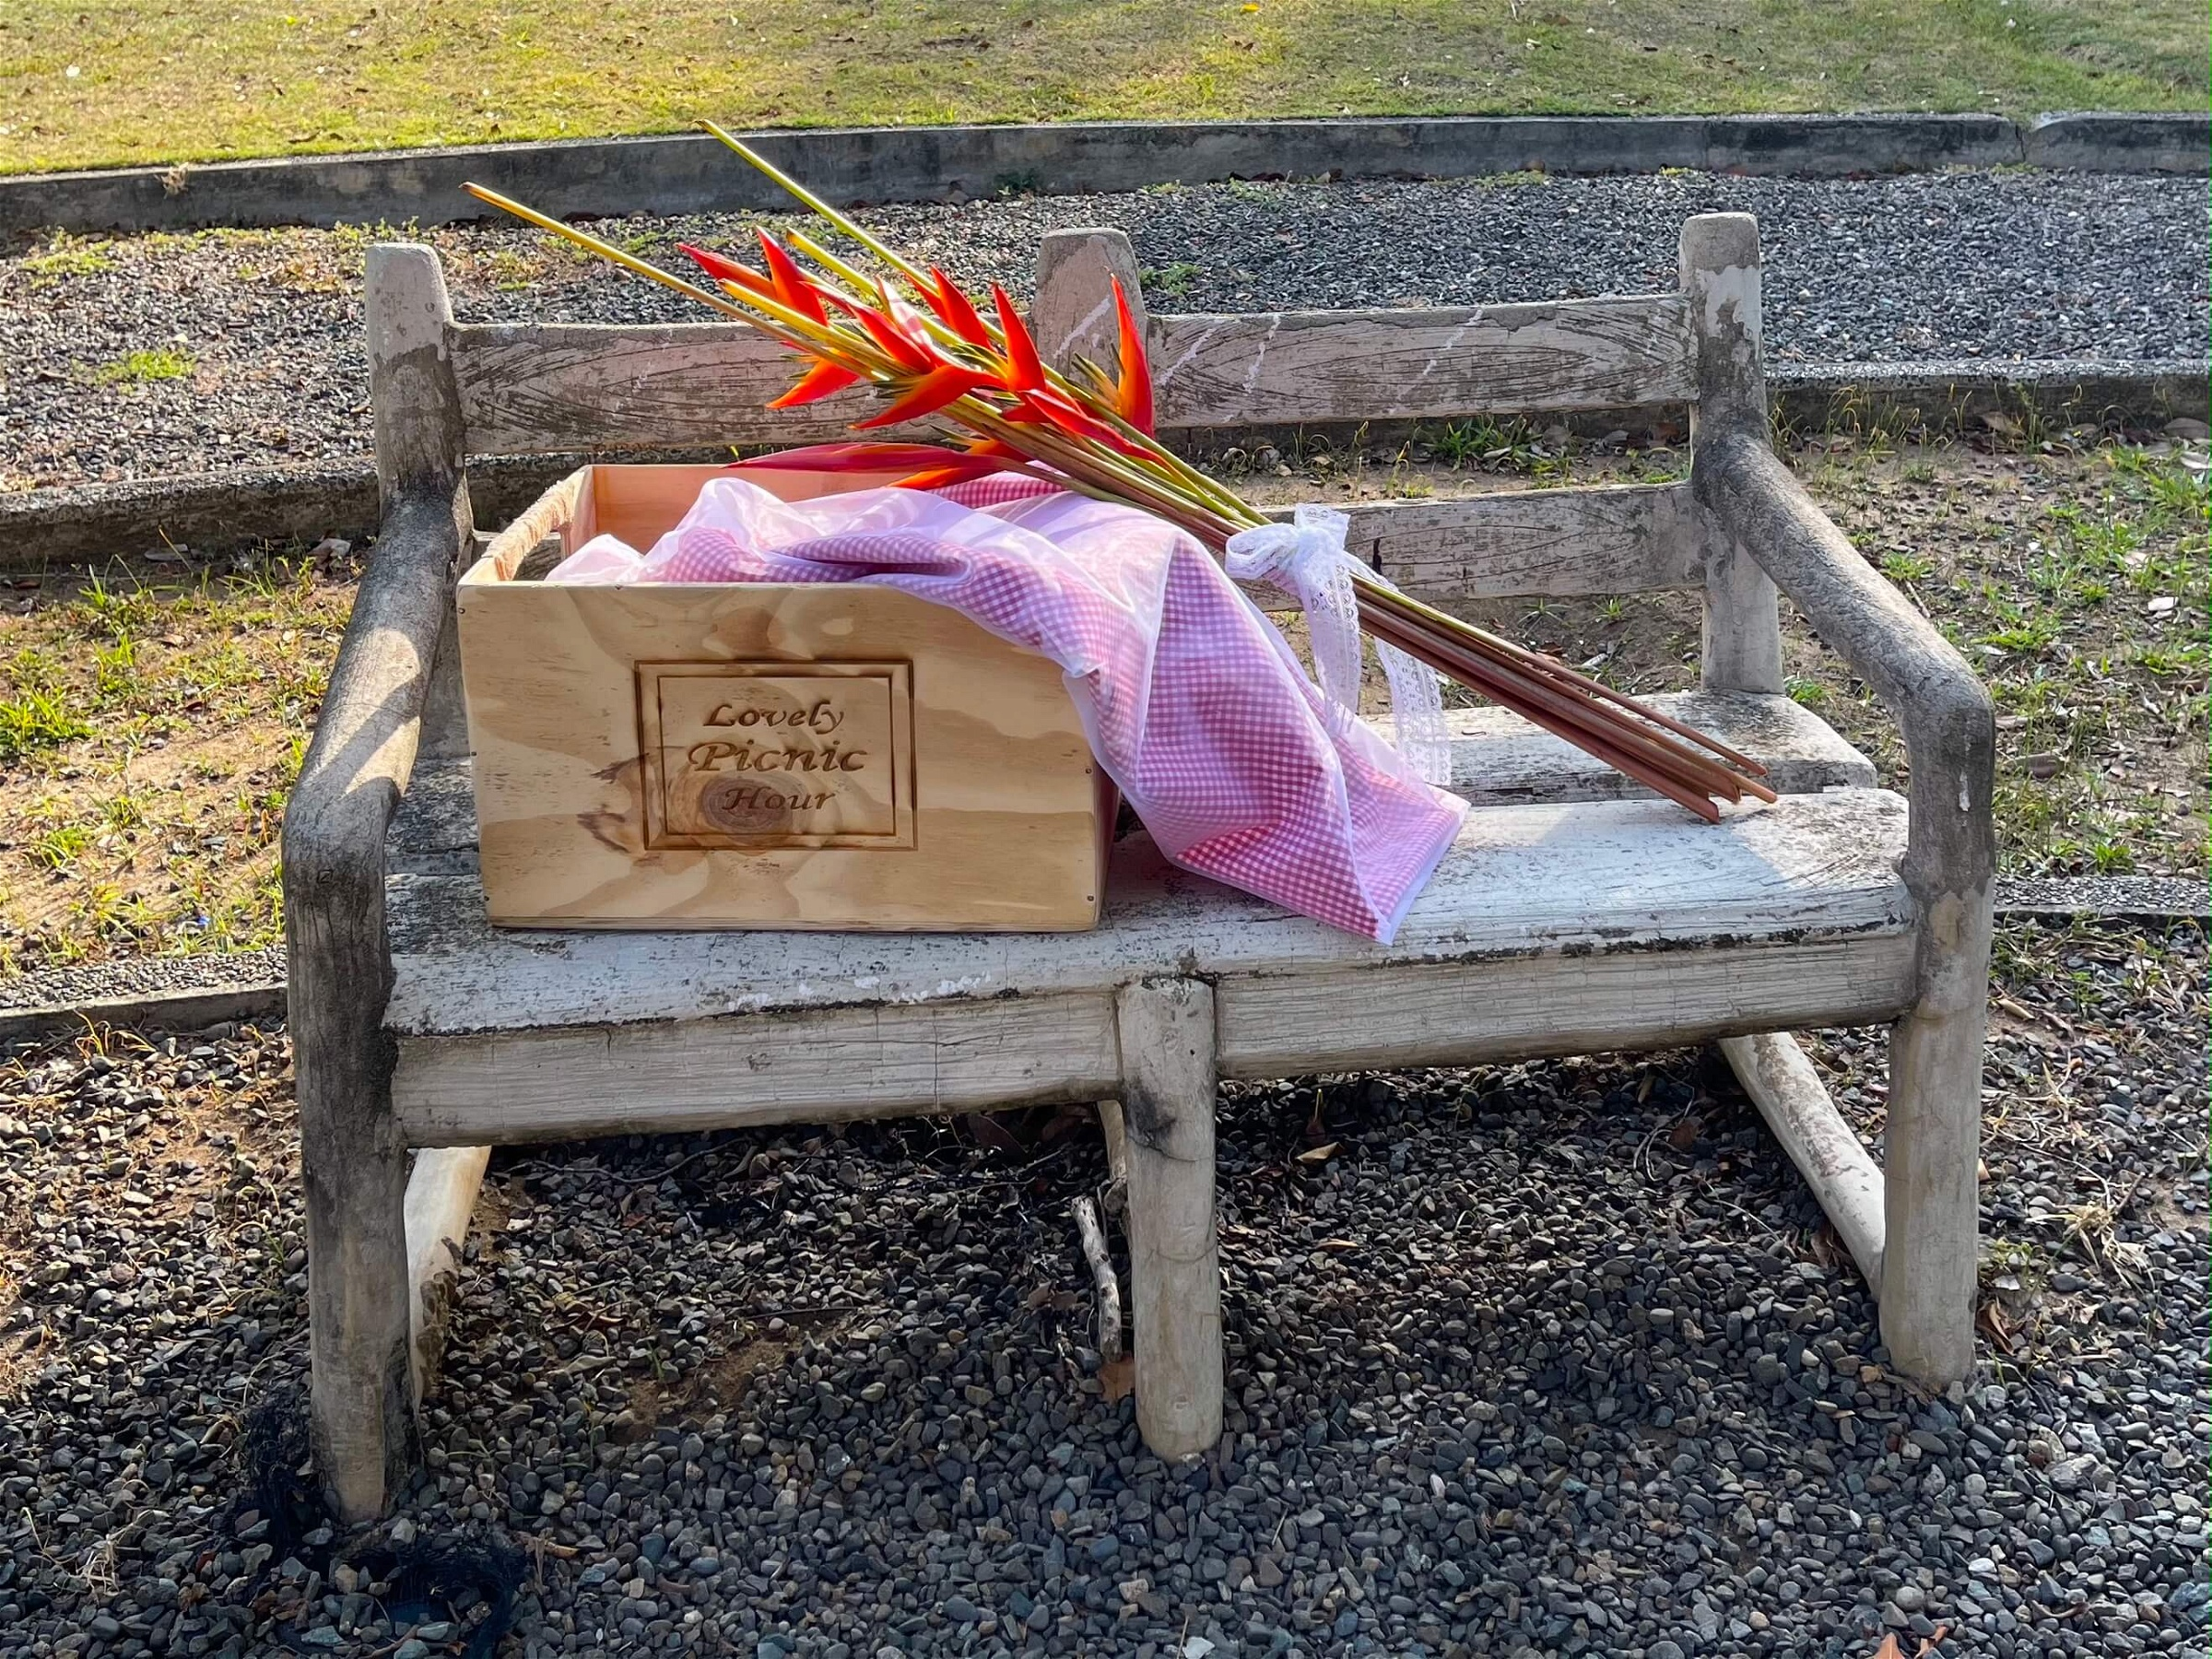 Picnic box with fresh flowers in Luis Muñoz Rivera Park in San Juan, Puerto Rico. Designed by Lovely Picnic Hour.